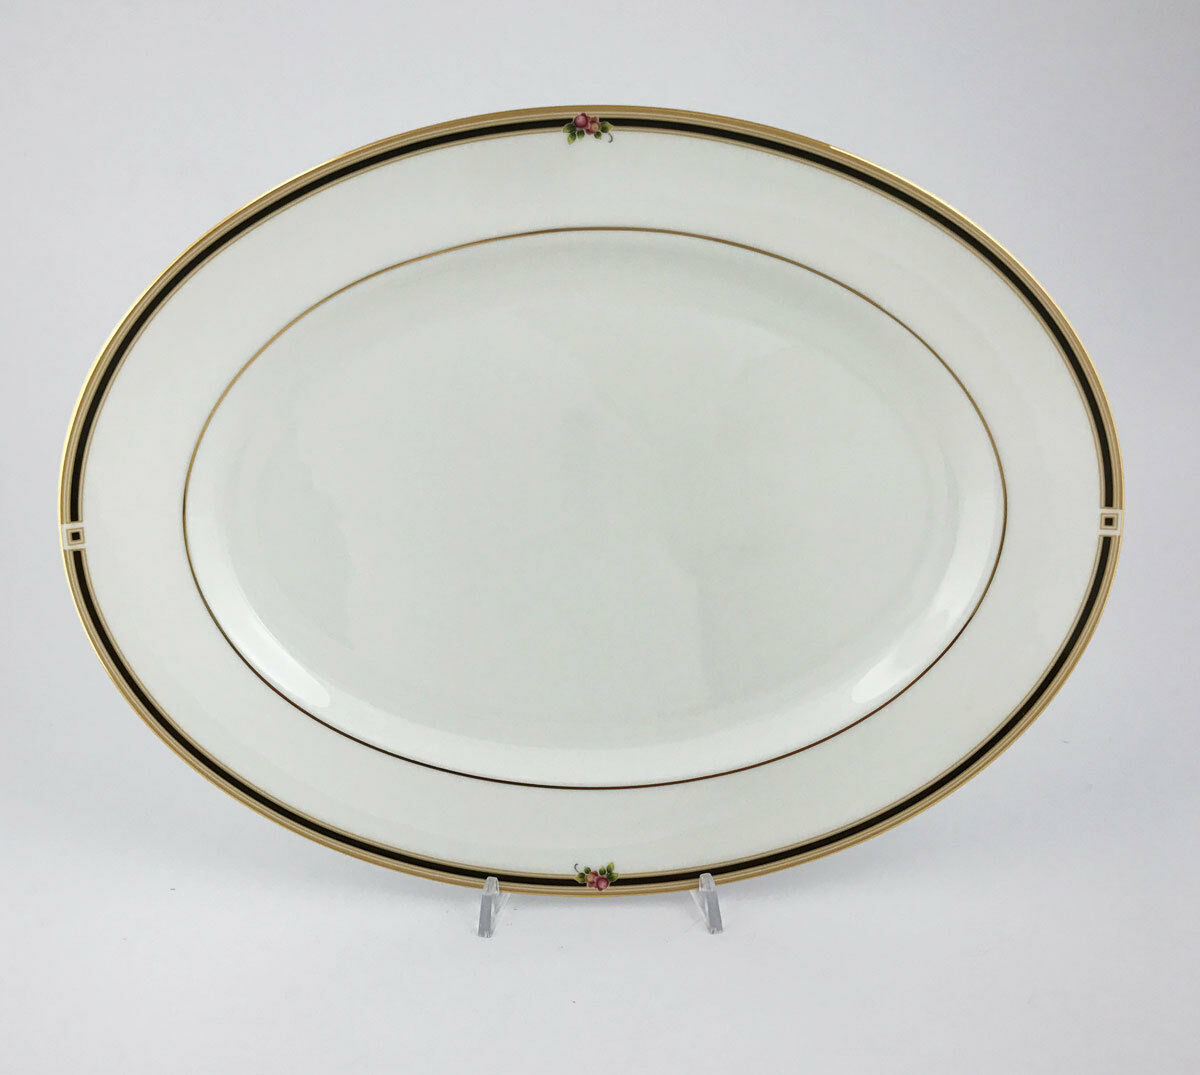 A61   Clioov Wedgwood Clio - Plat Ovale - Table